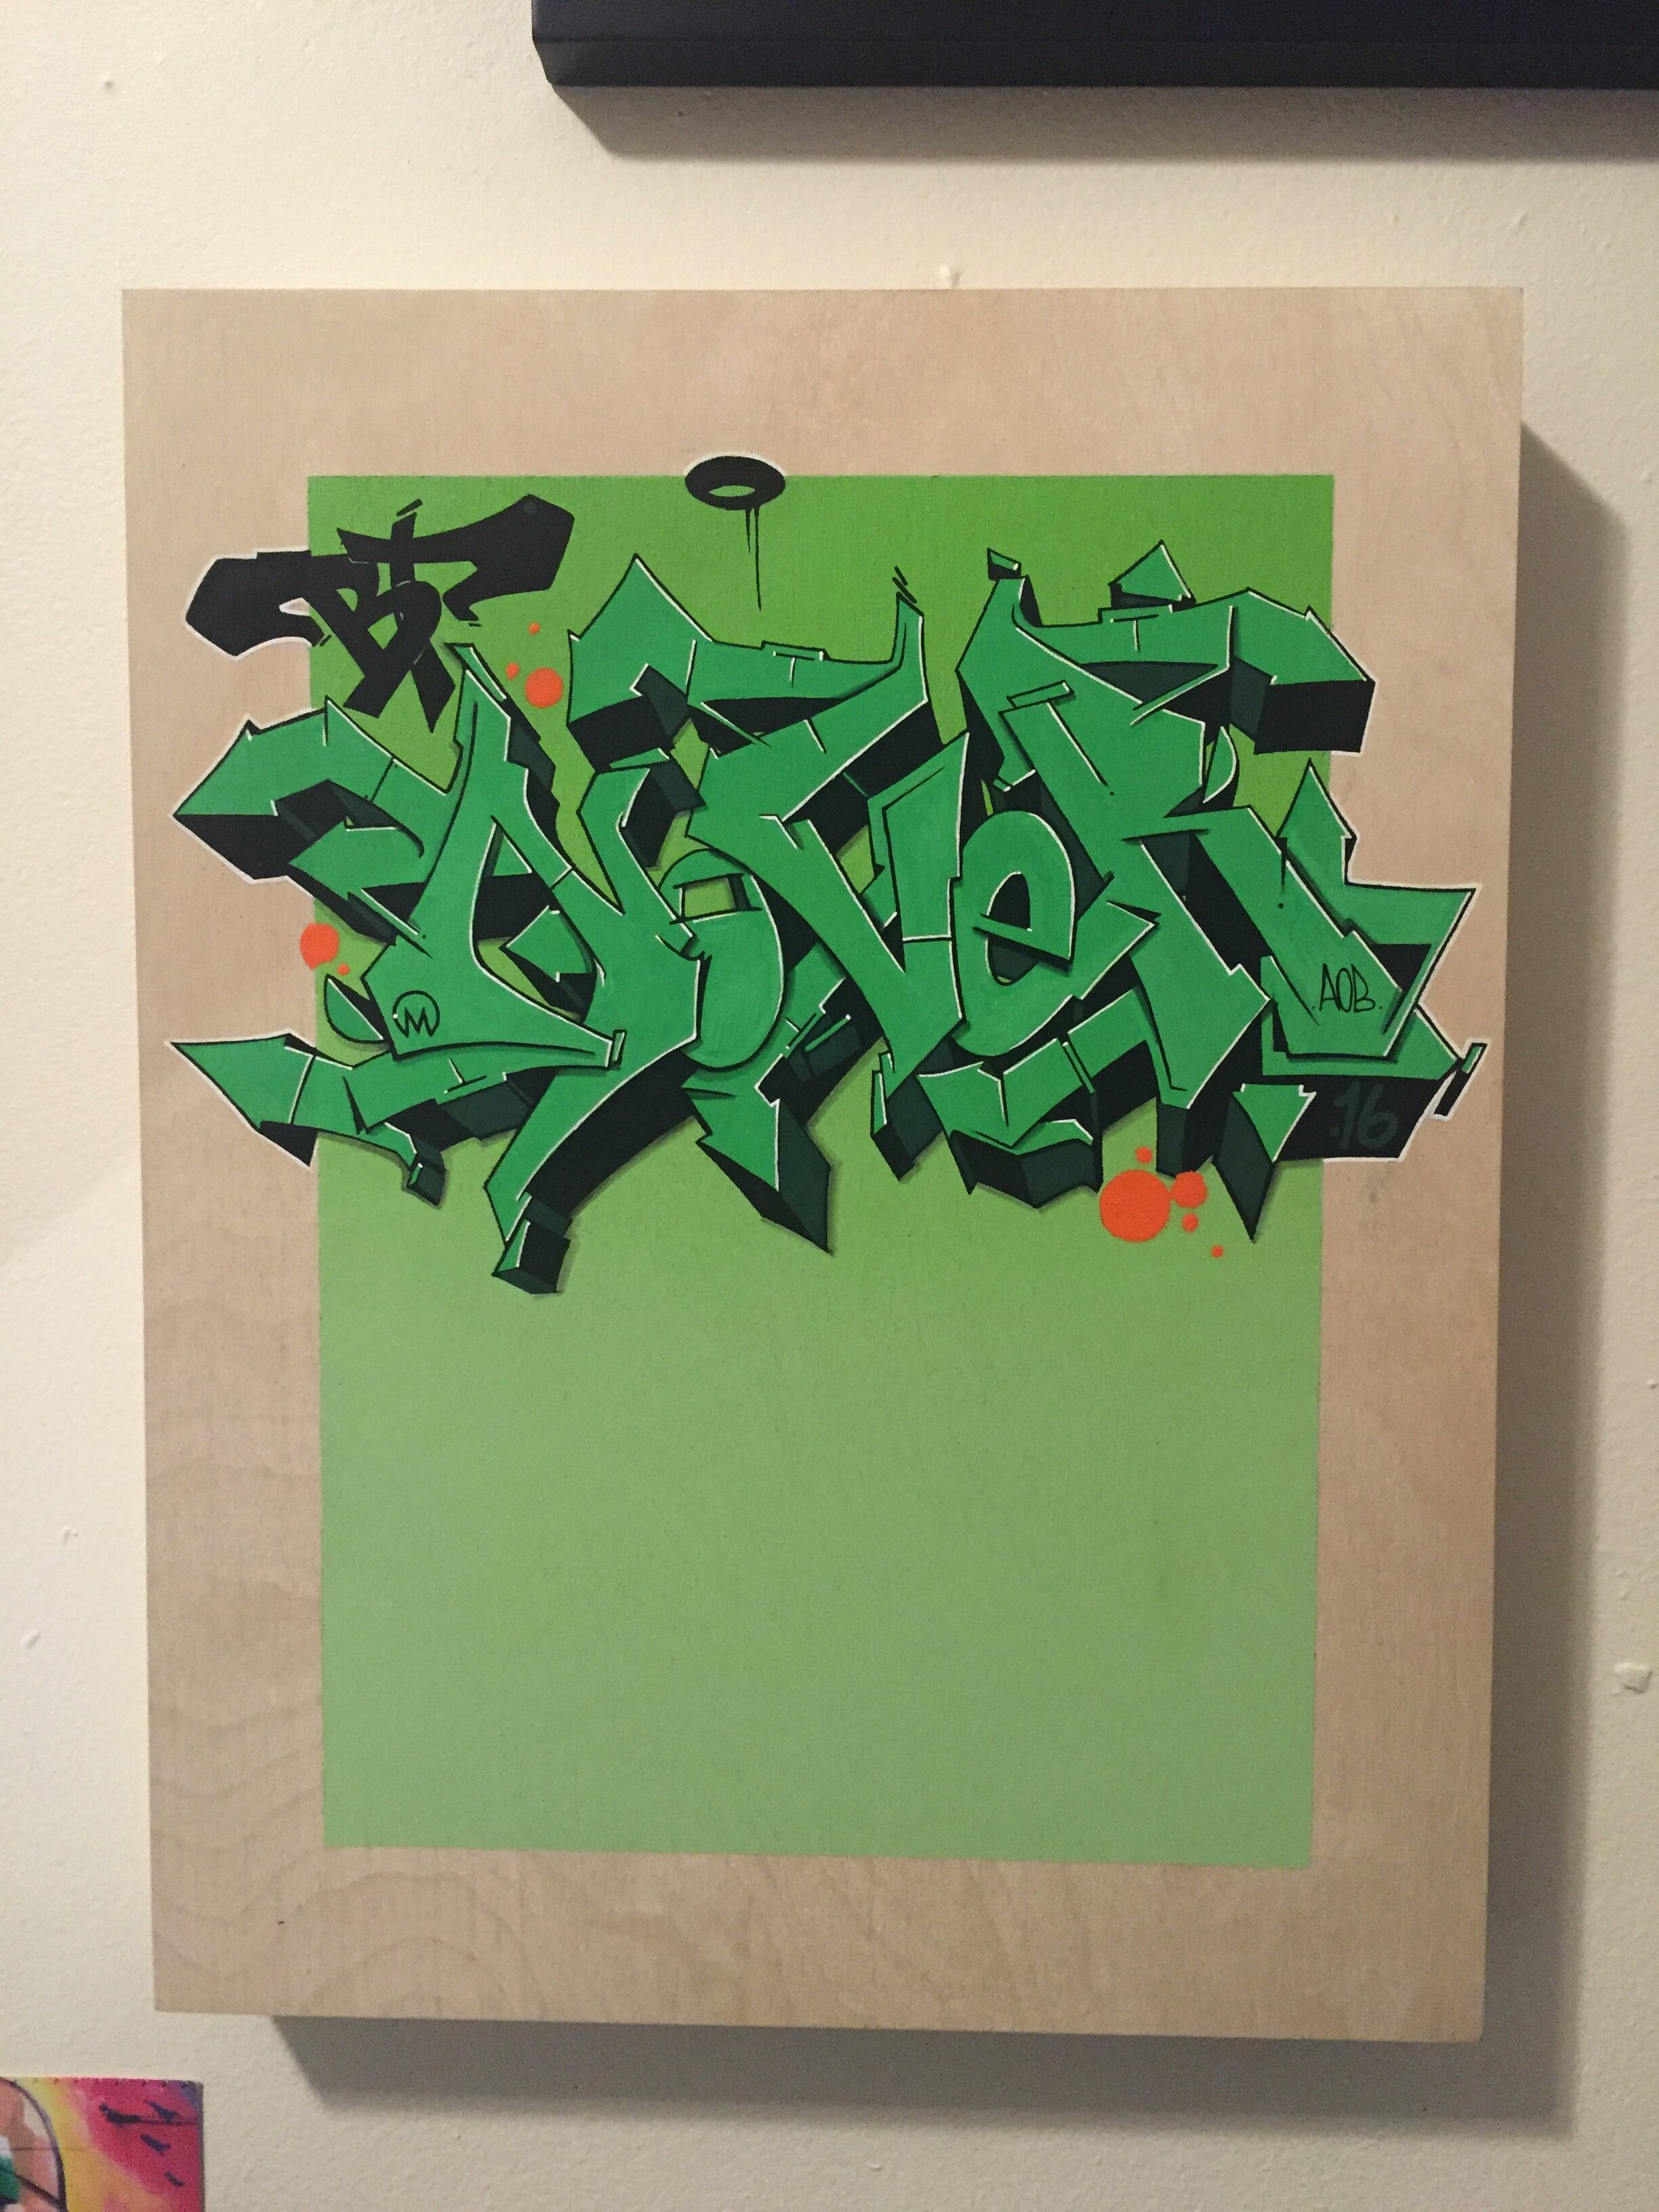 Nover, Graffiti on Wood Canvas with Markers and Spray Paint. 2016.